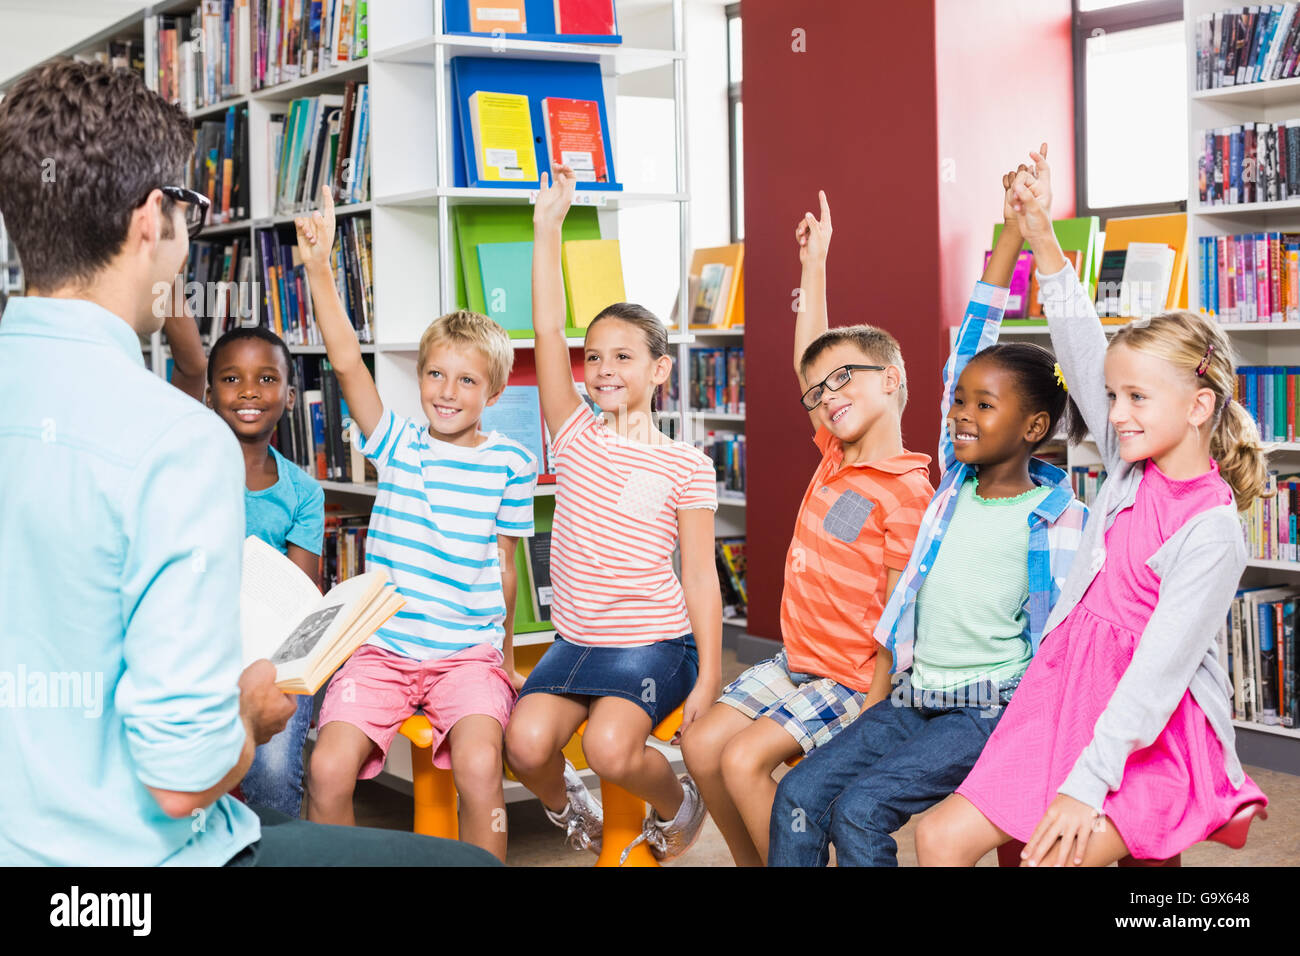 Kids raising their hands in library Stock Photo